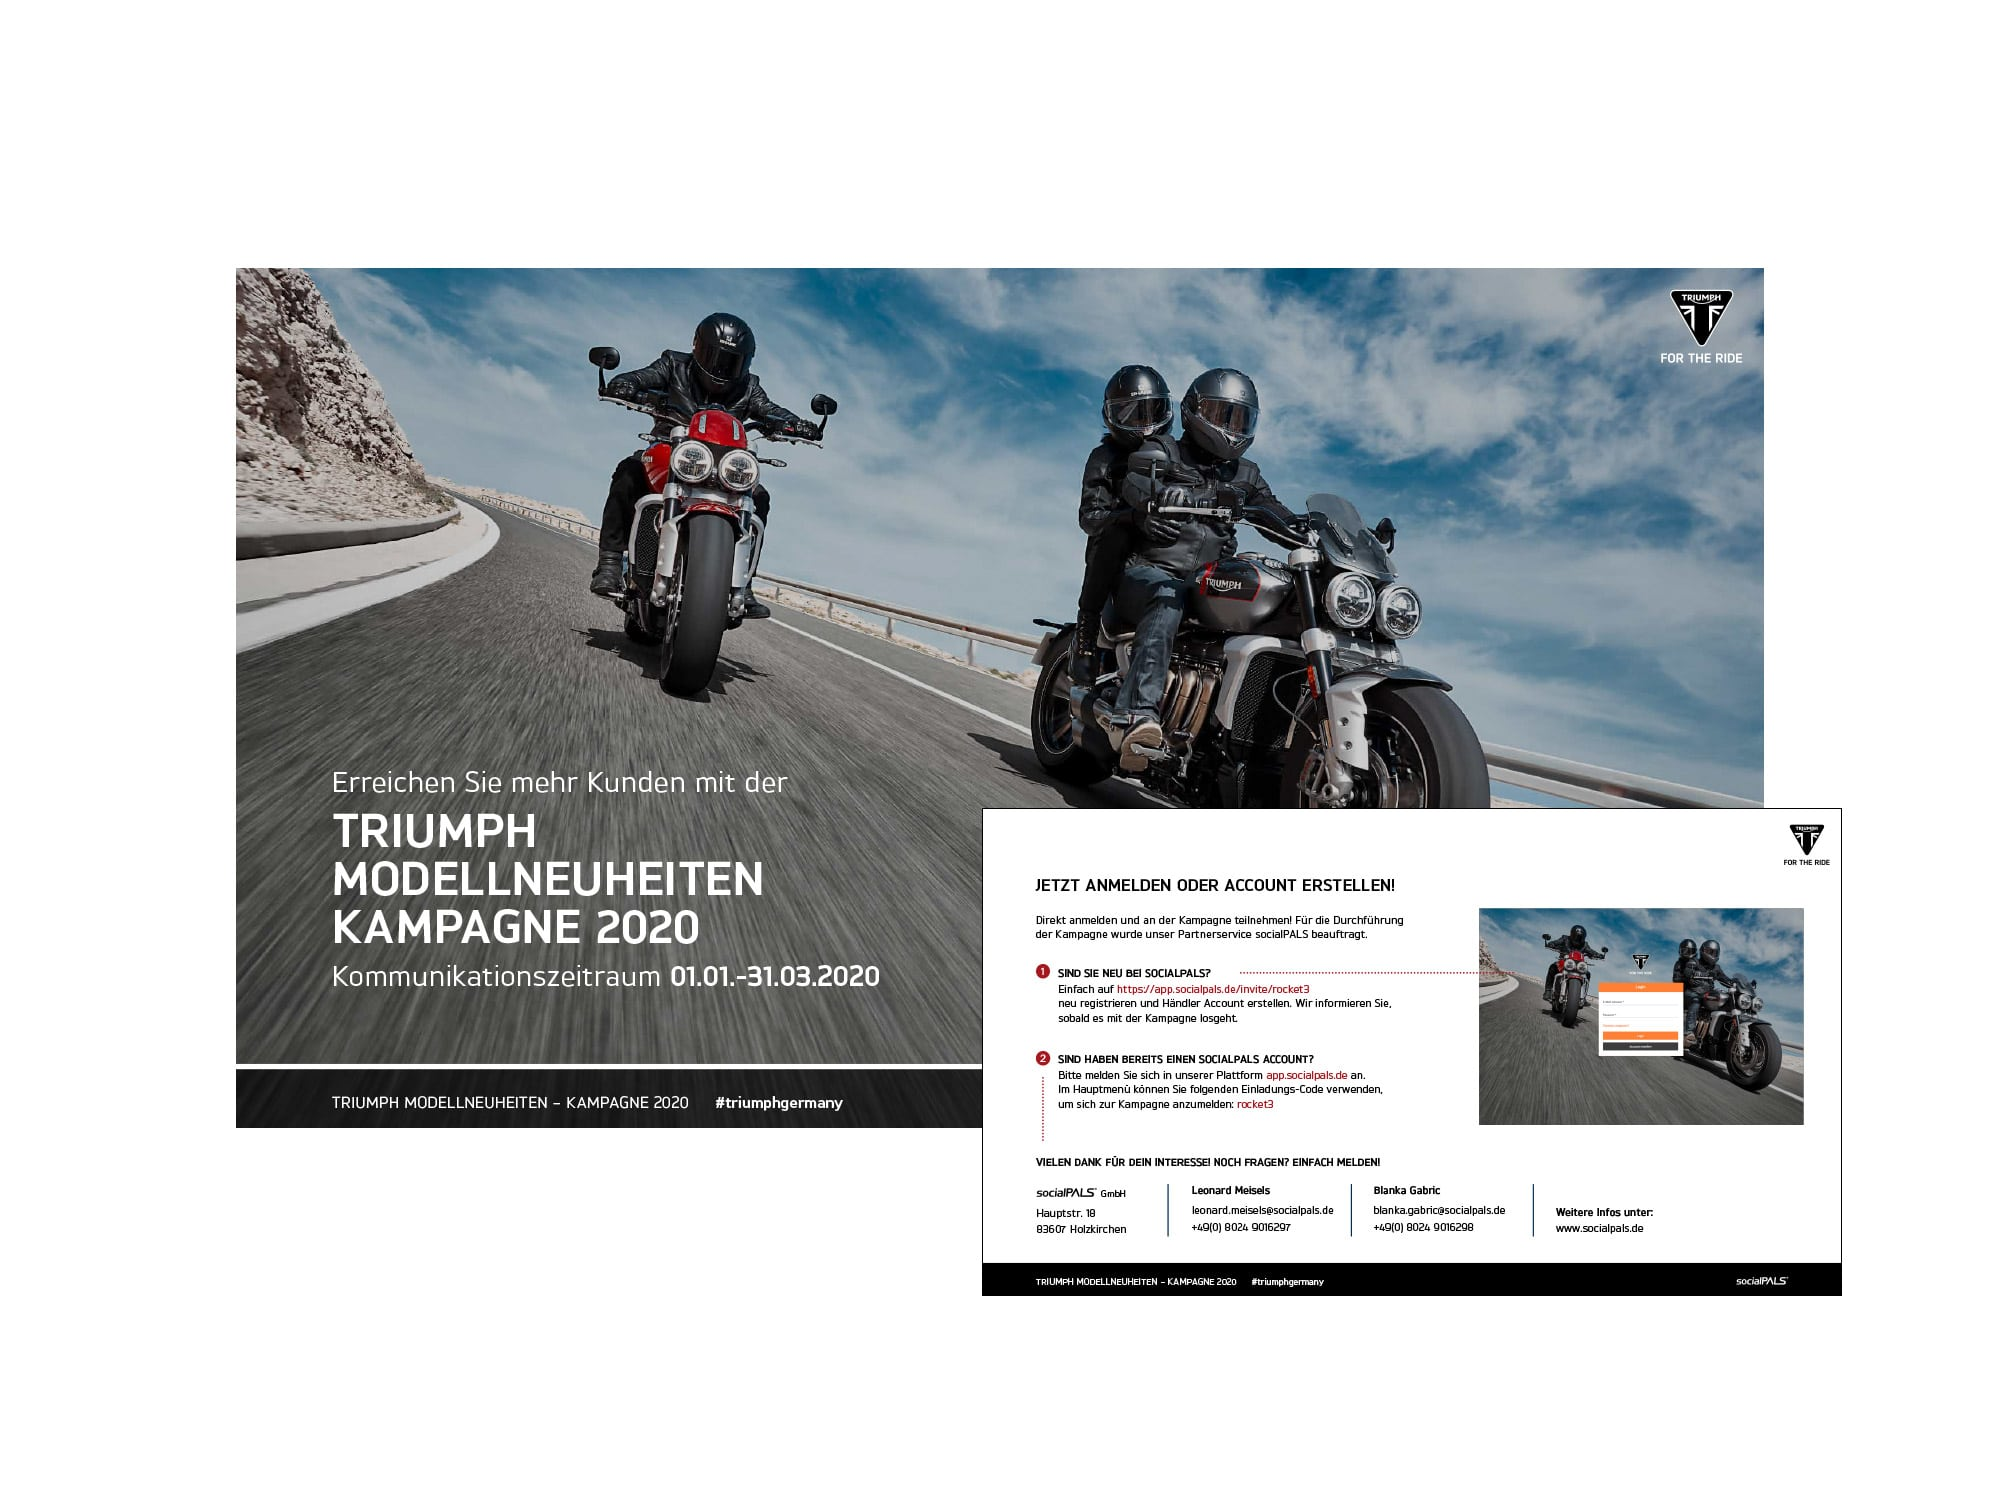 Invitation from the Triumph sales team